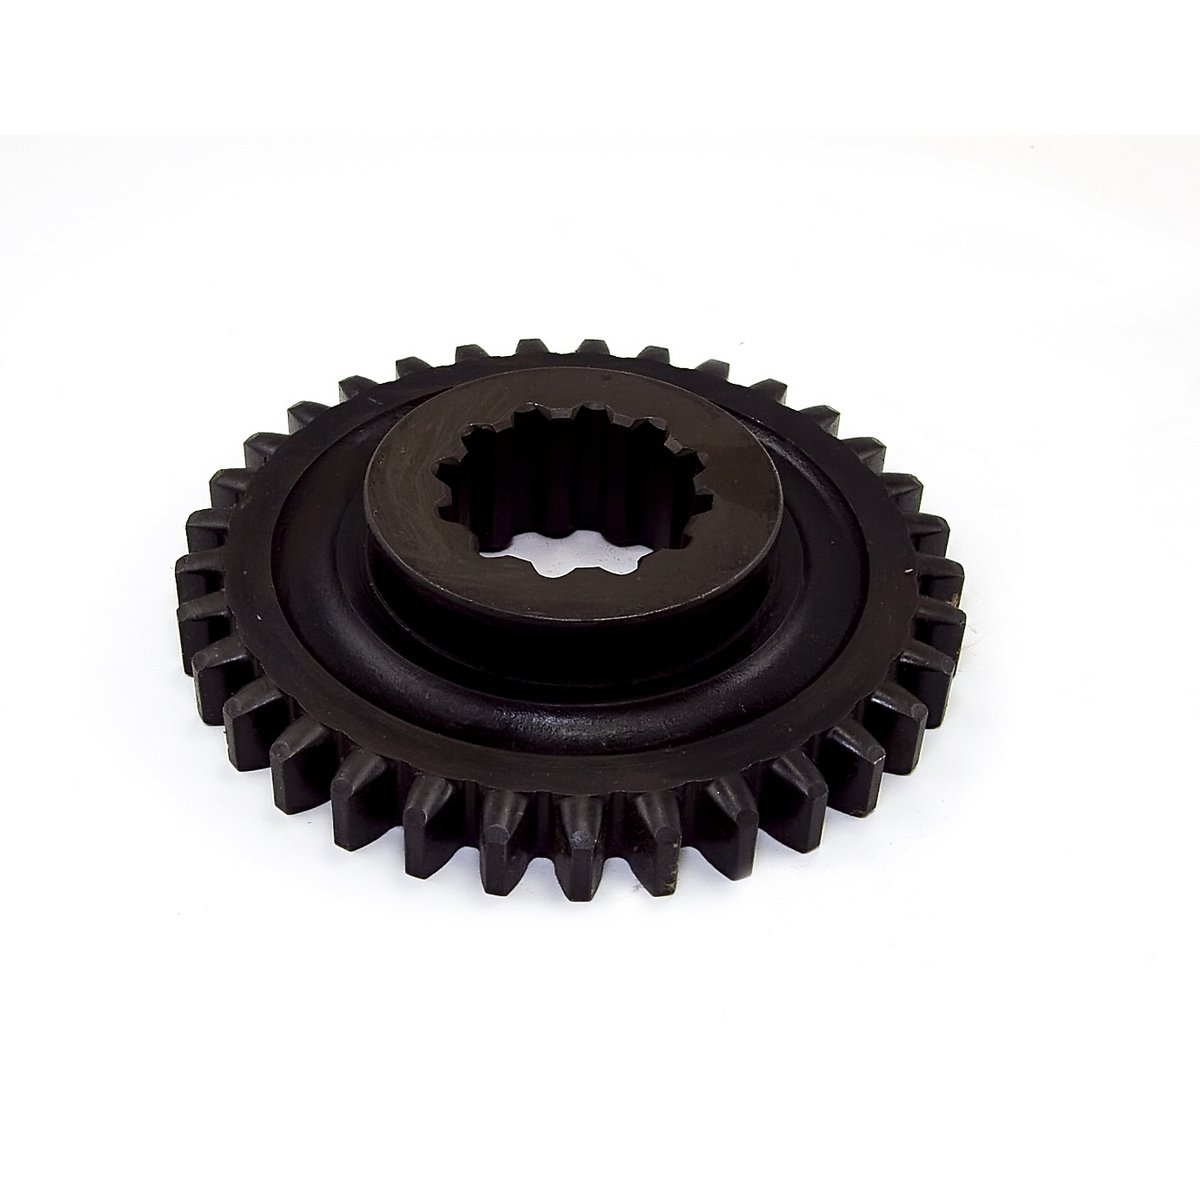 Omix-Ada 18670.10 Transfer Case Output Shaft Sliding Gear